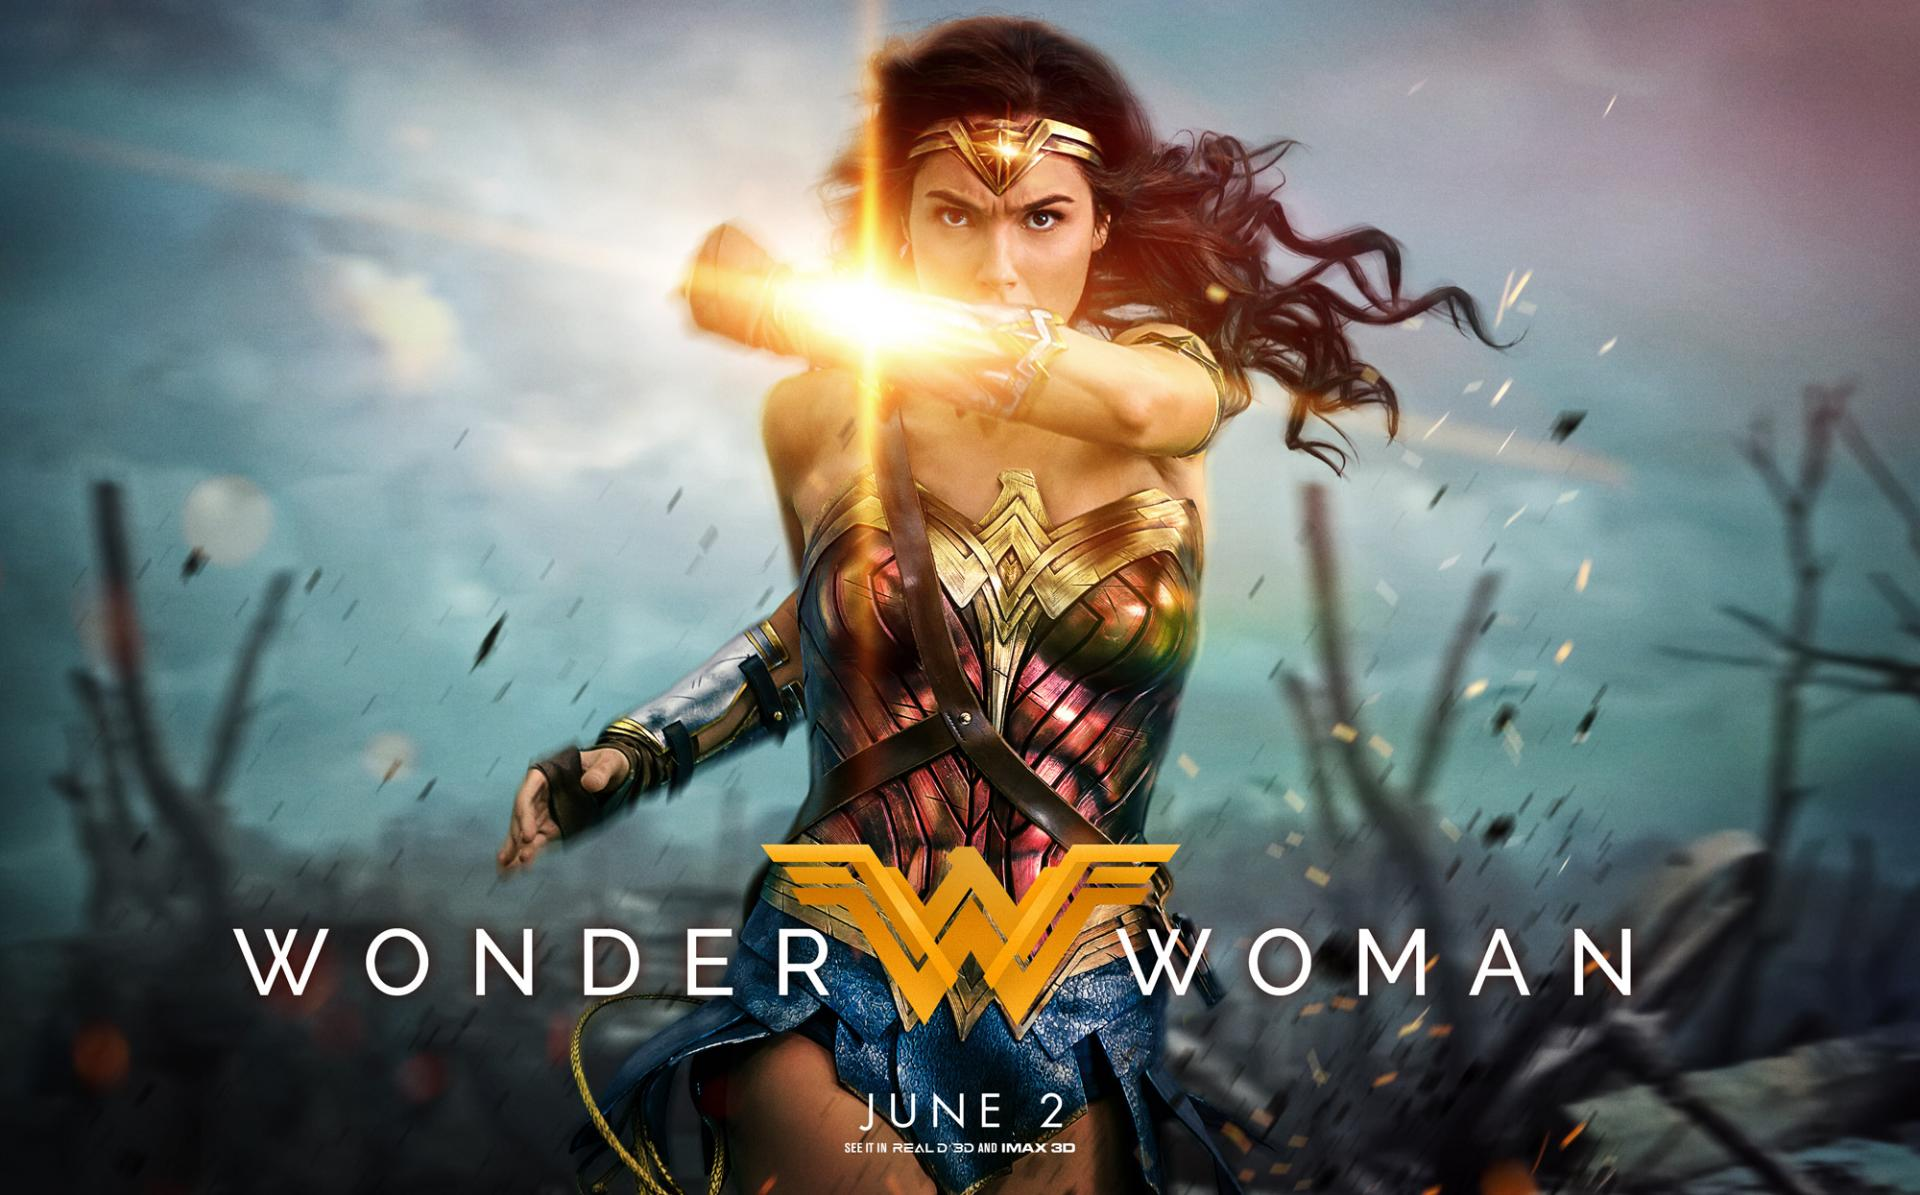 Wallpaper Wonder Woman 2017 Movies 6723: Financial Information